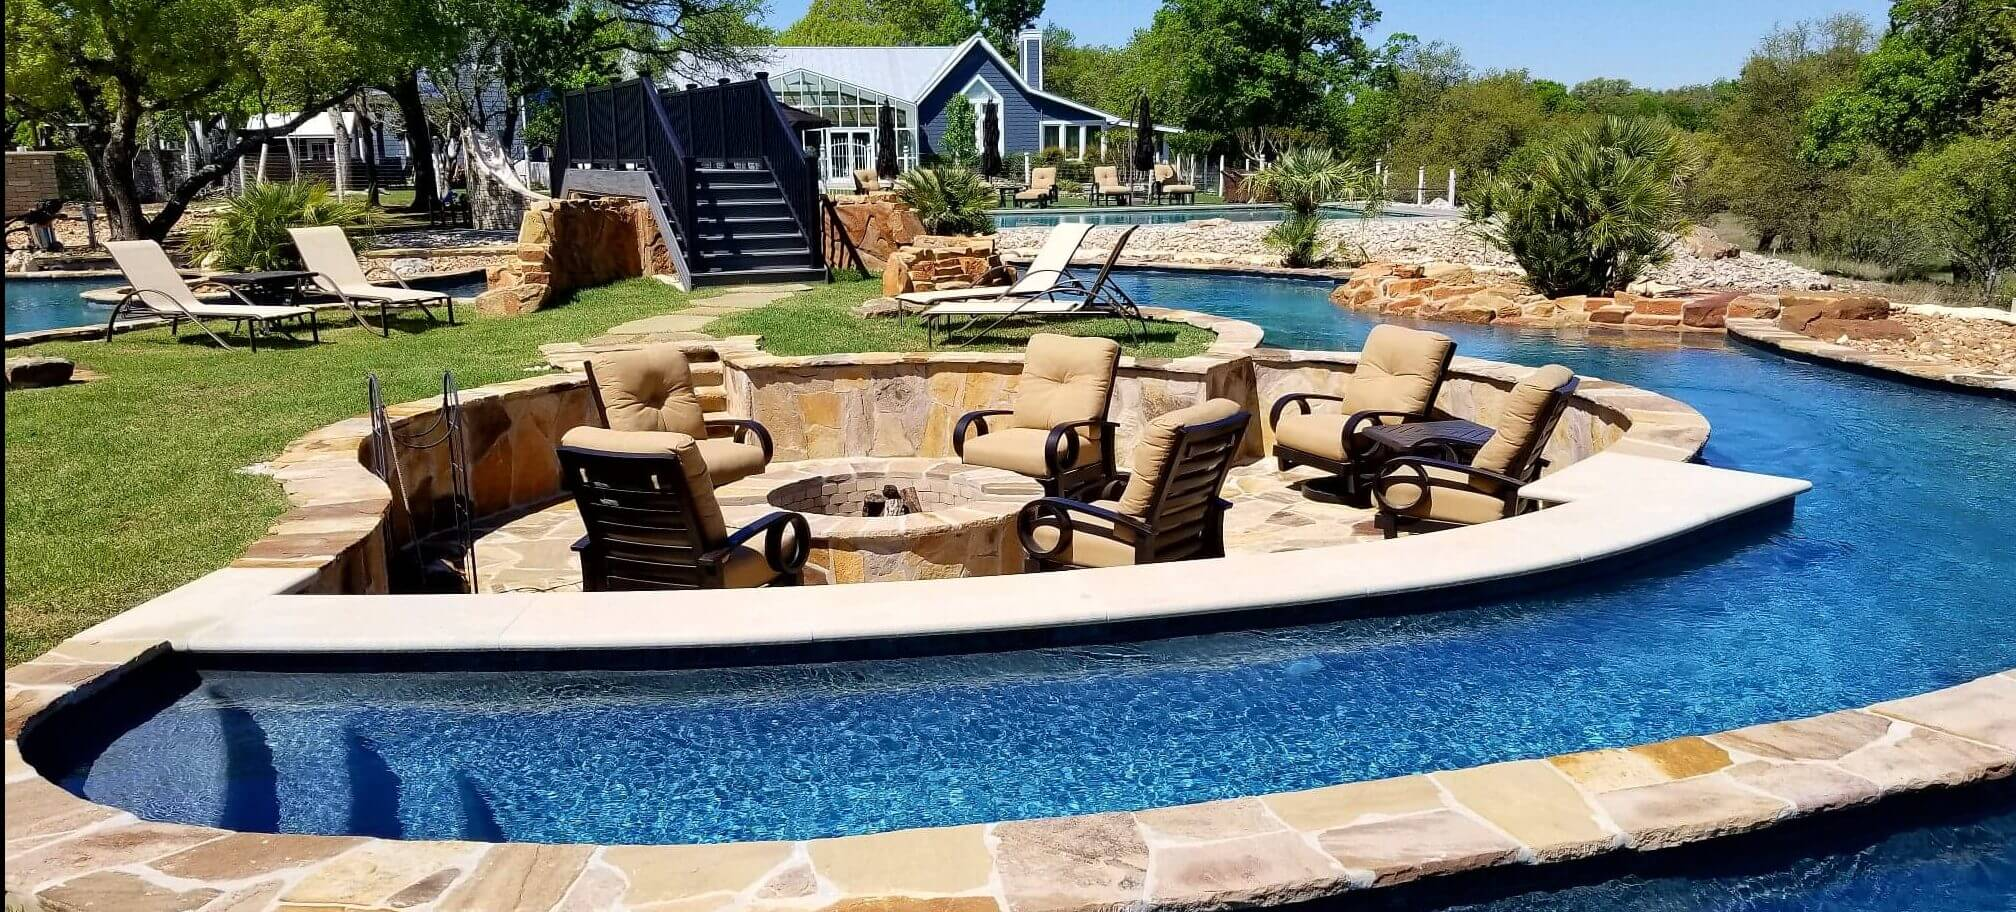 Nationally syndicated show pool kings features keith zars for Pool kings design